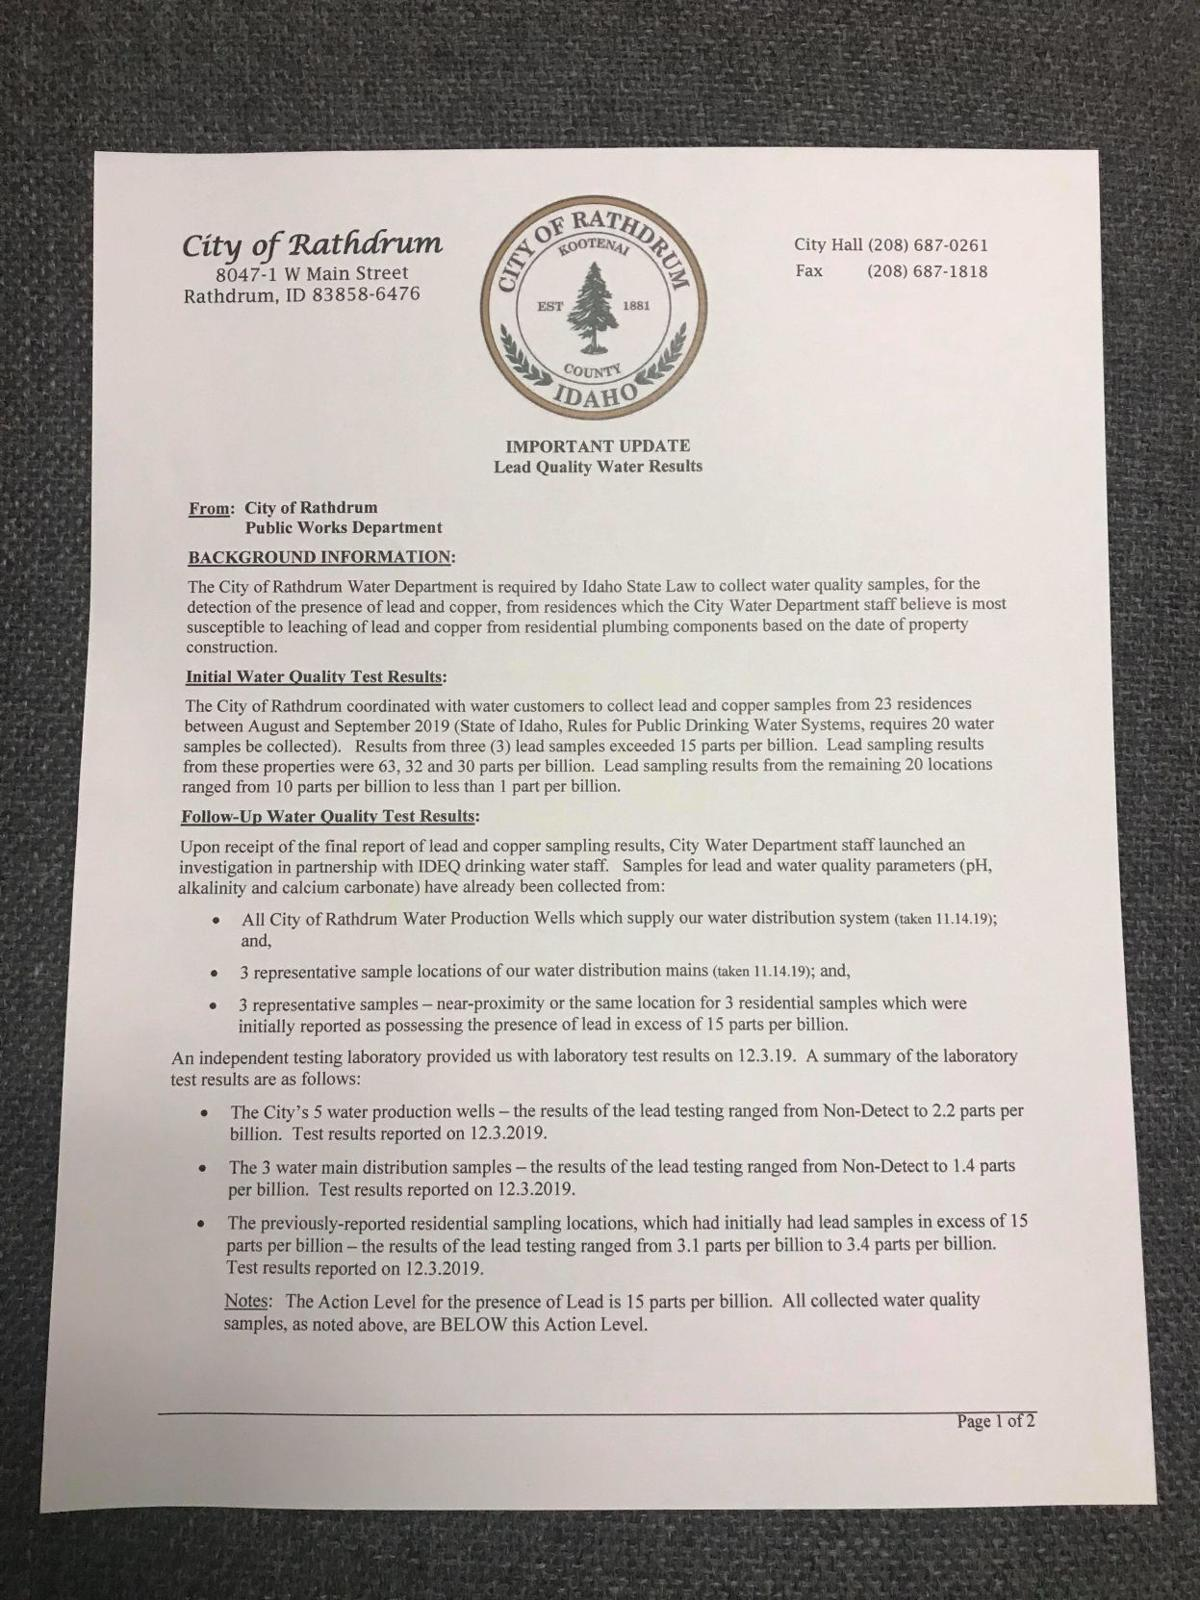 Letter from City of Rathdrum addressing lead in water